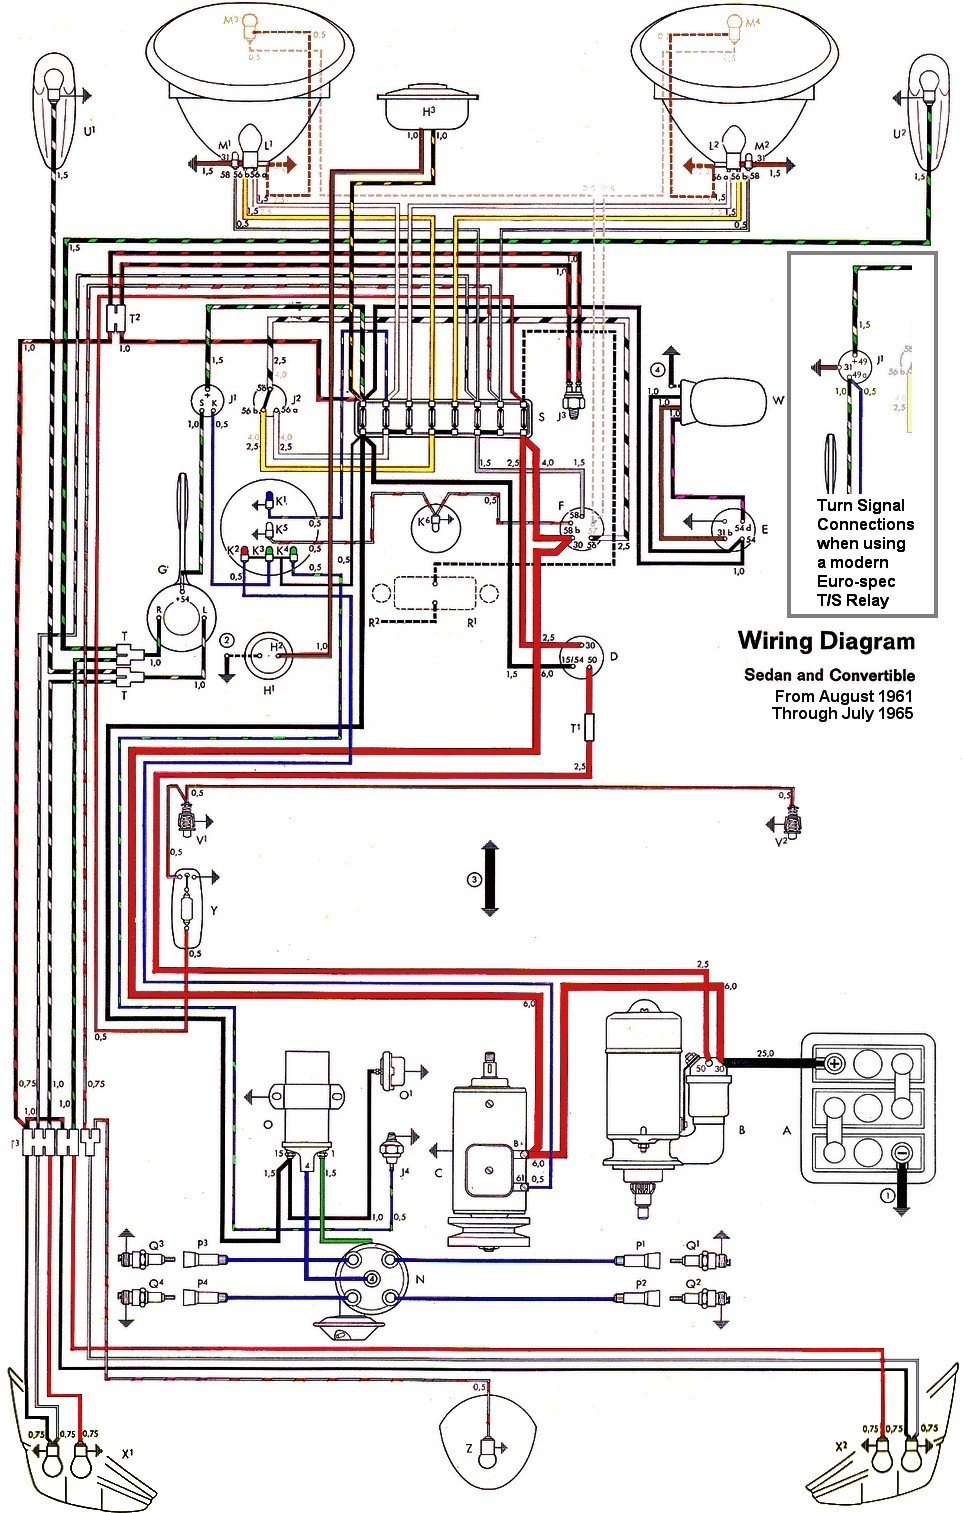 bug_62 65withinset thesamba com type 1 wiring diagrams 1973 vw beetle fuse box diagram at readyjetset.co